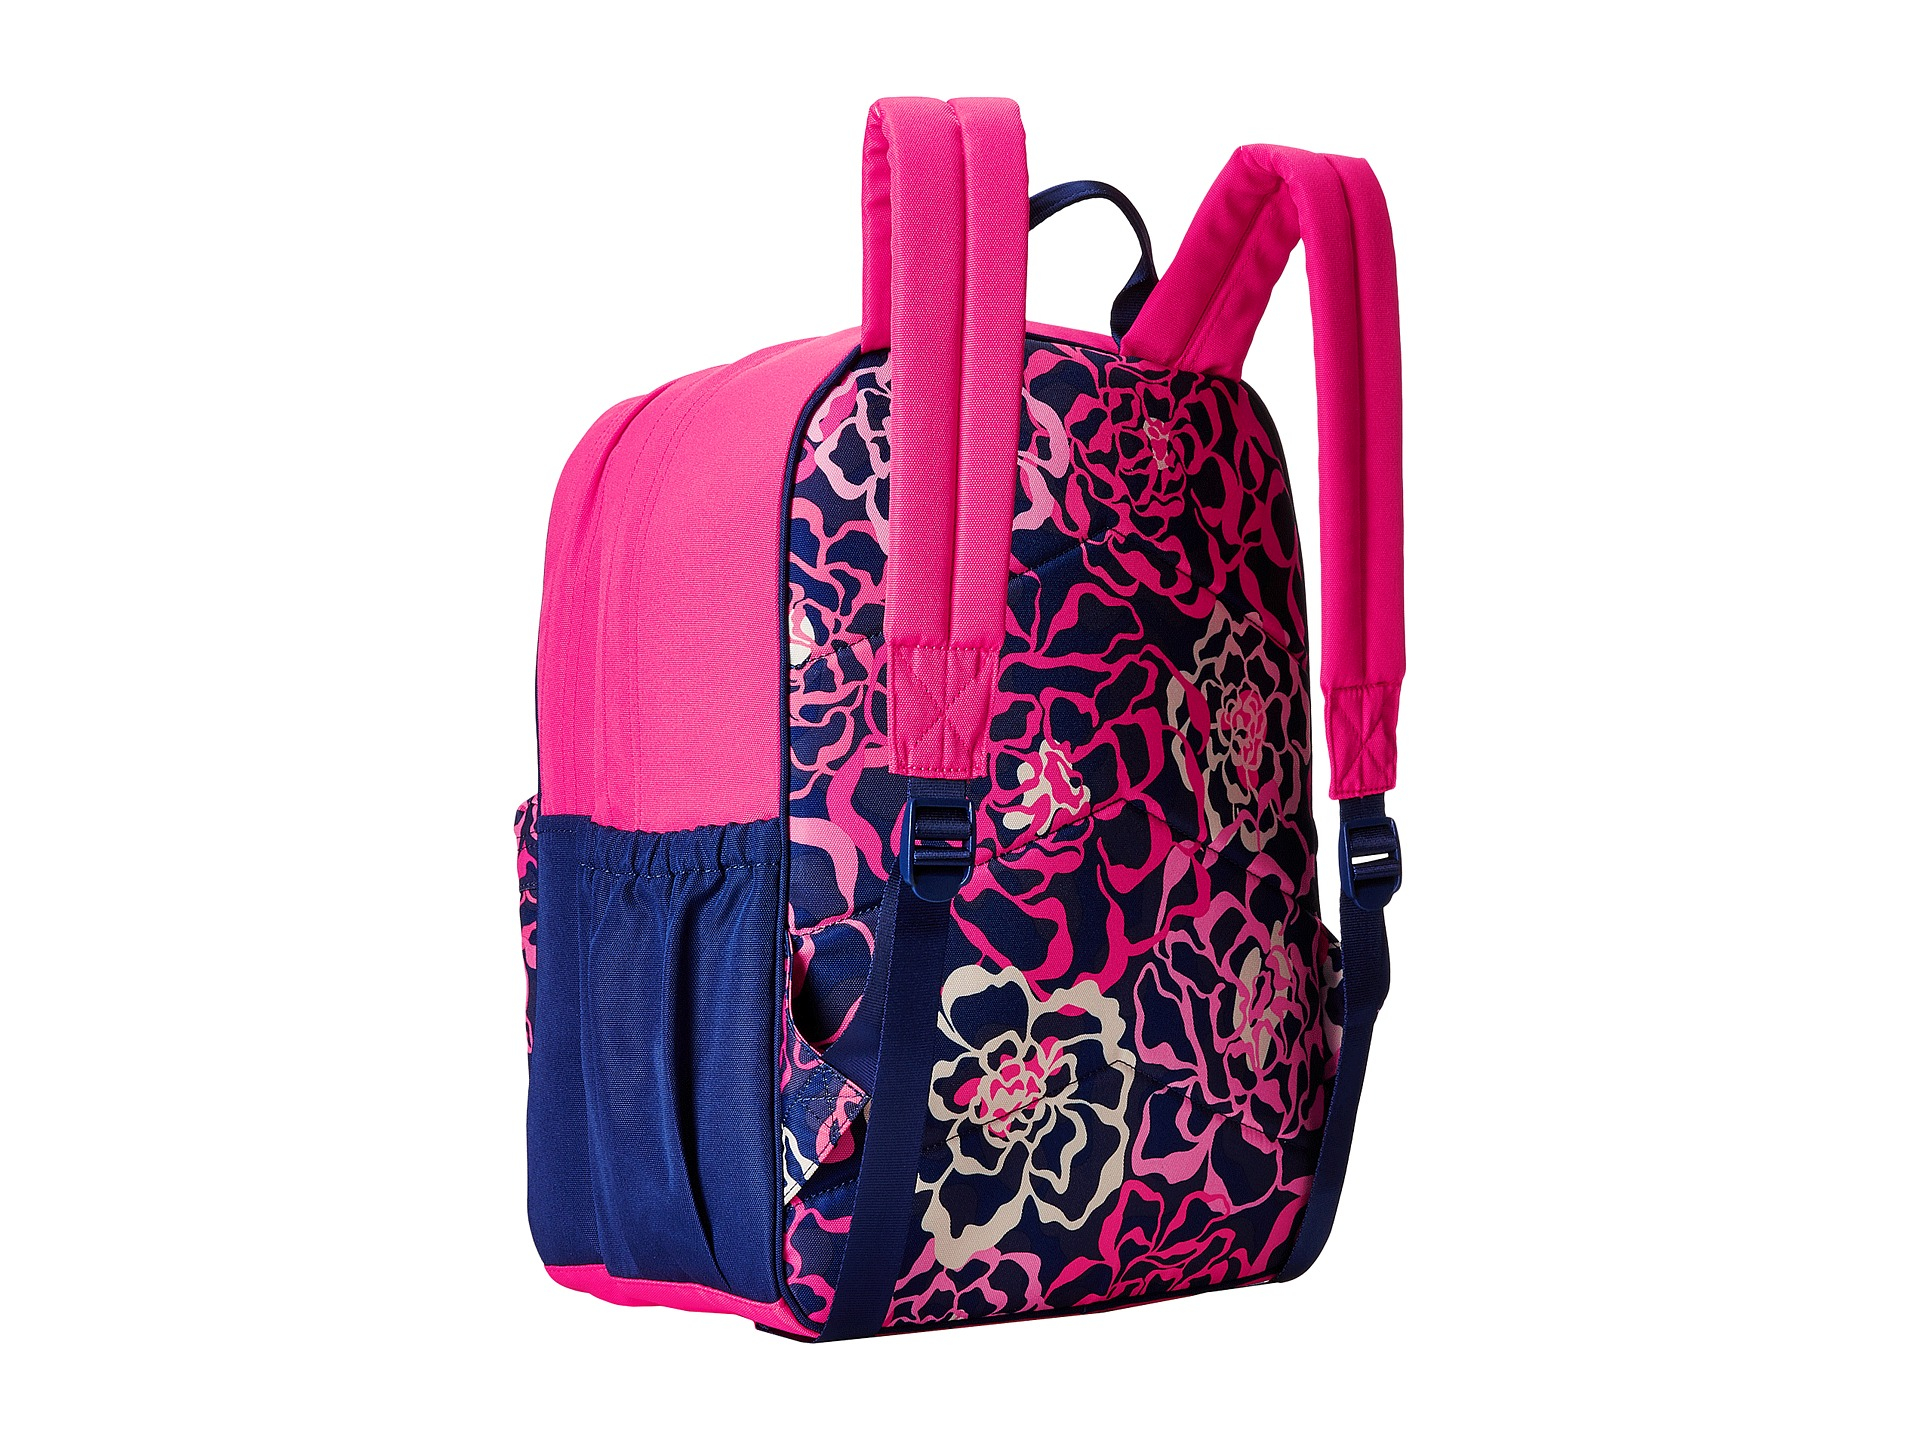 5f1085bb233d Lyst - Vera Bradley Large Color Block Backpack in Pink